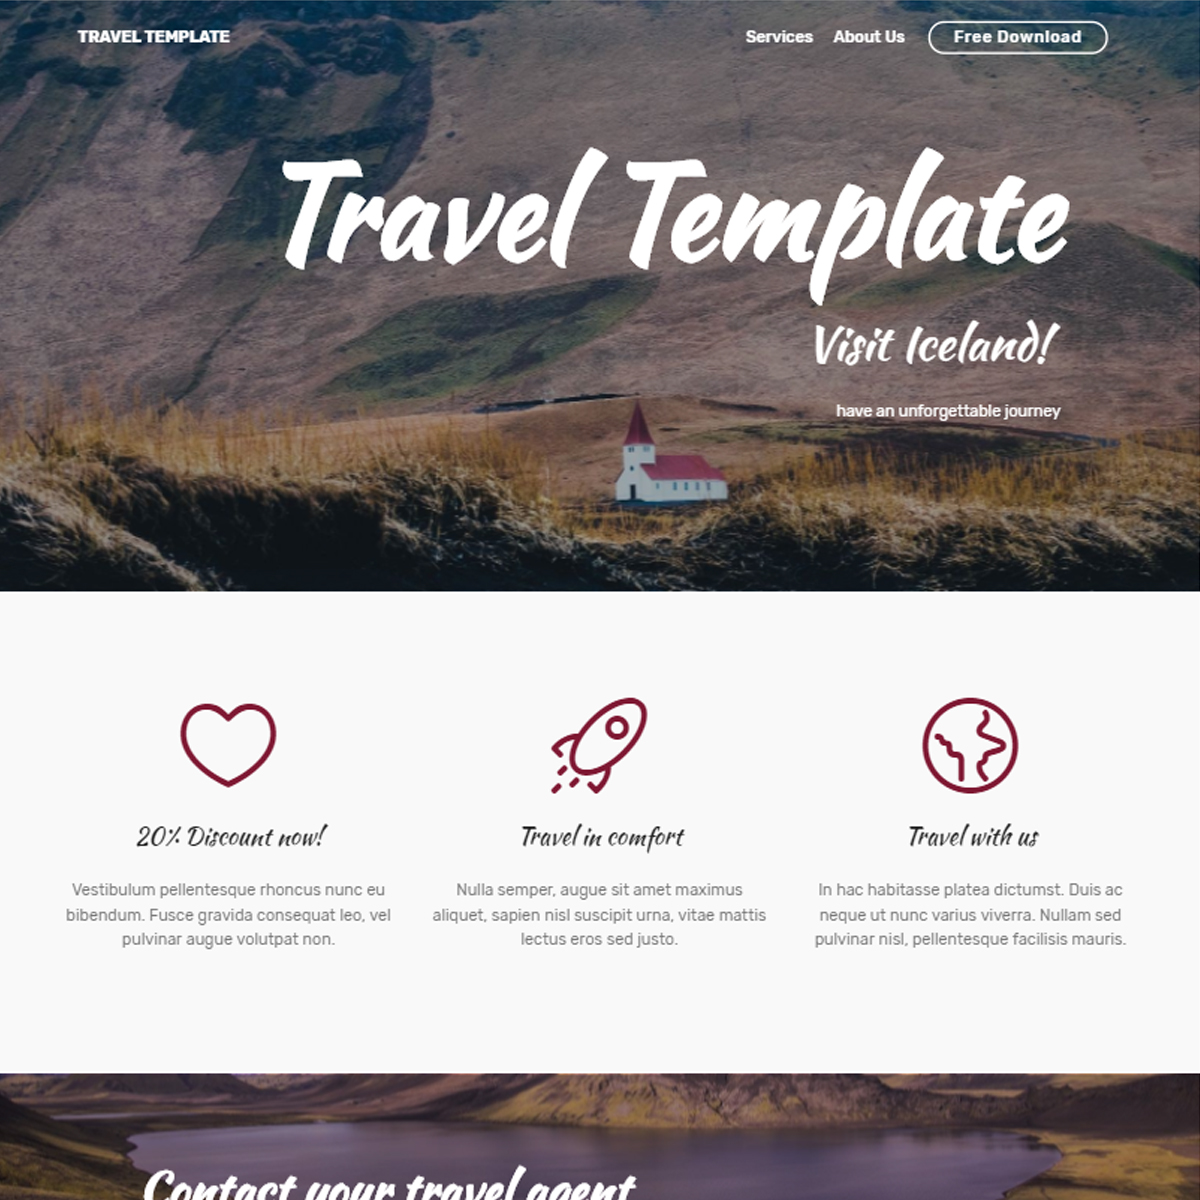 HTML5 Bootstrap Travel Templates